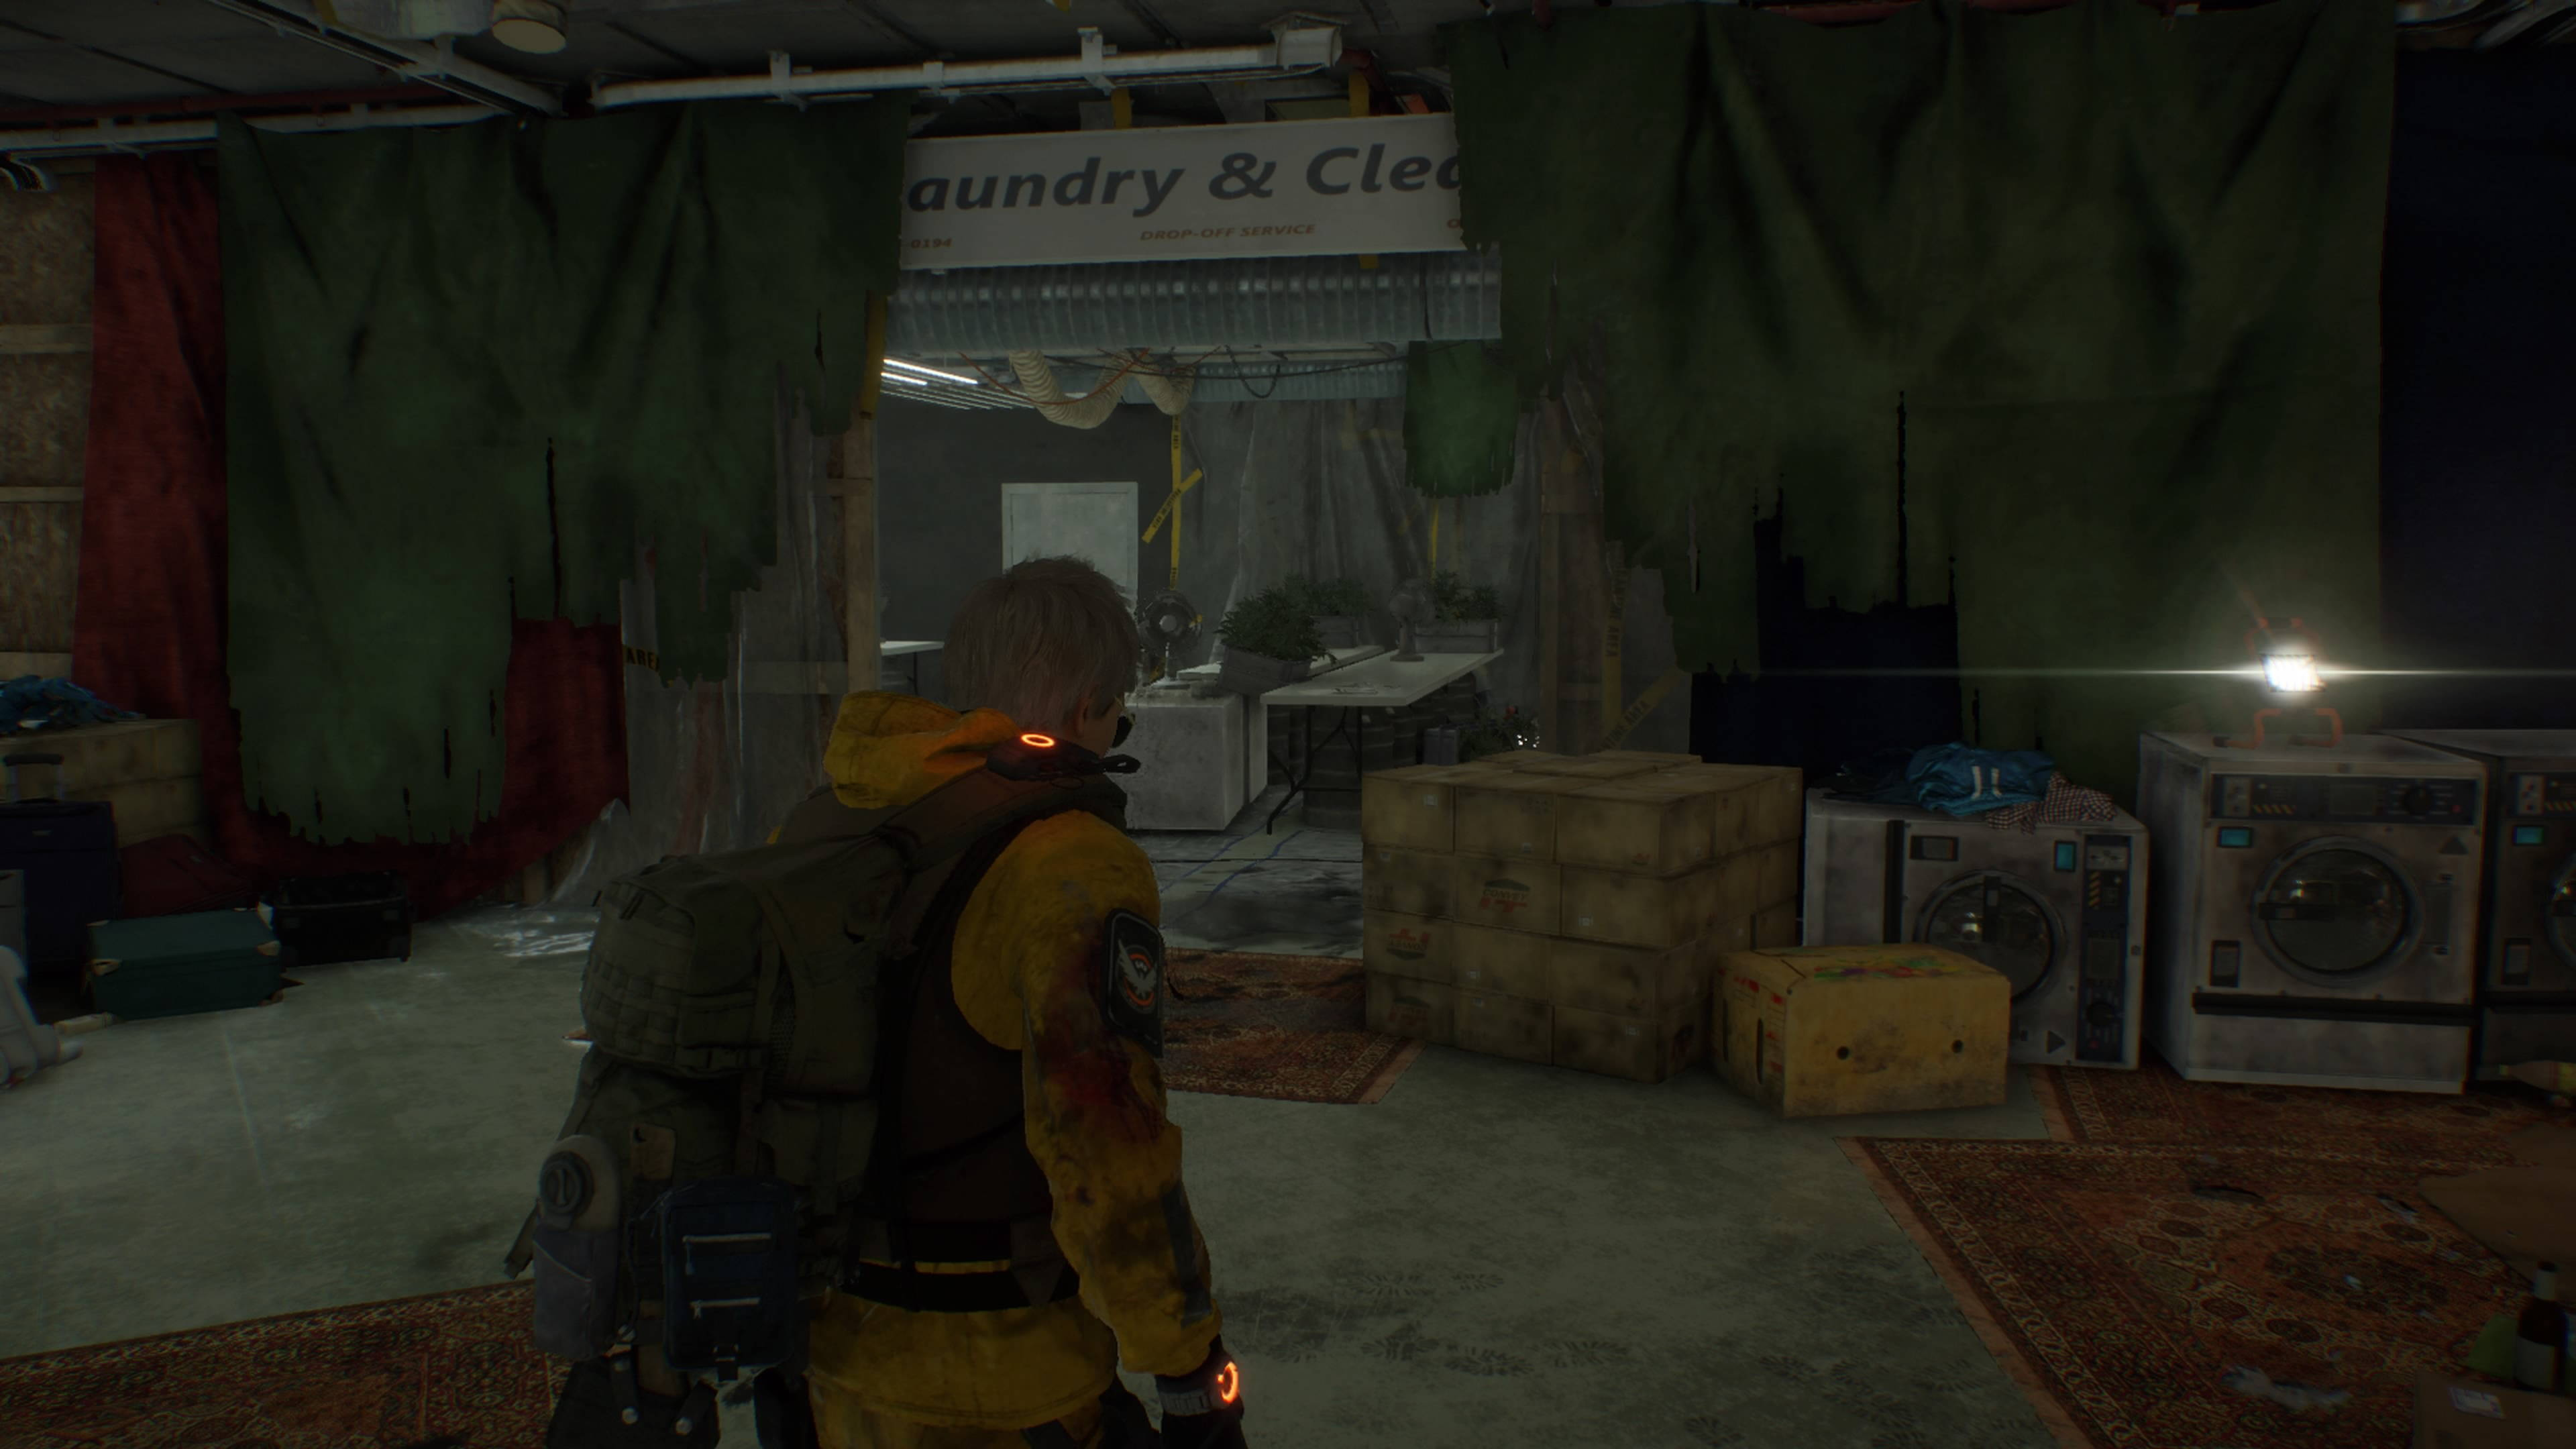 tomclancysthedivision_surviedlcscreens2_0006